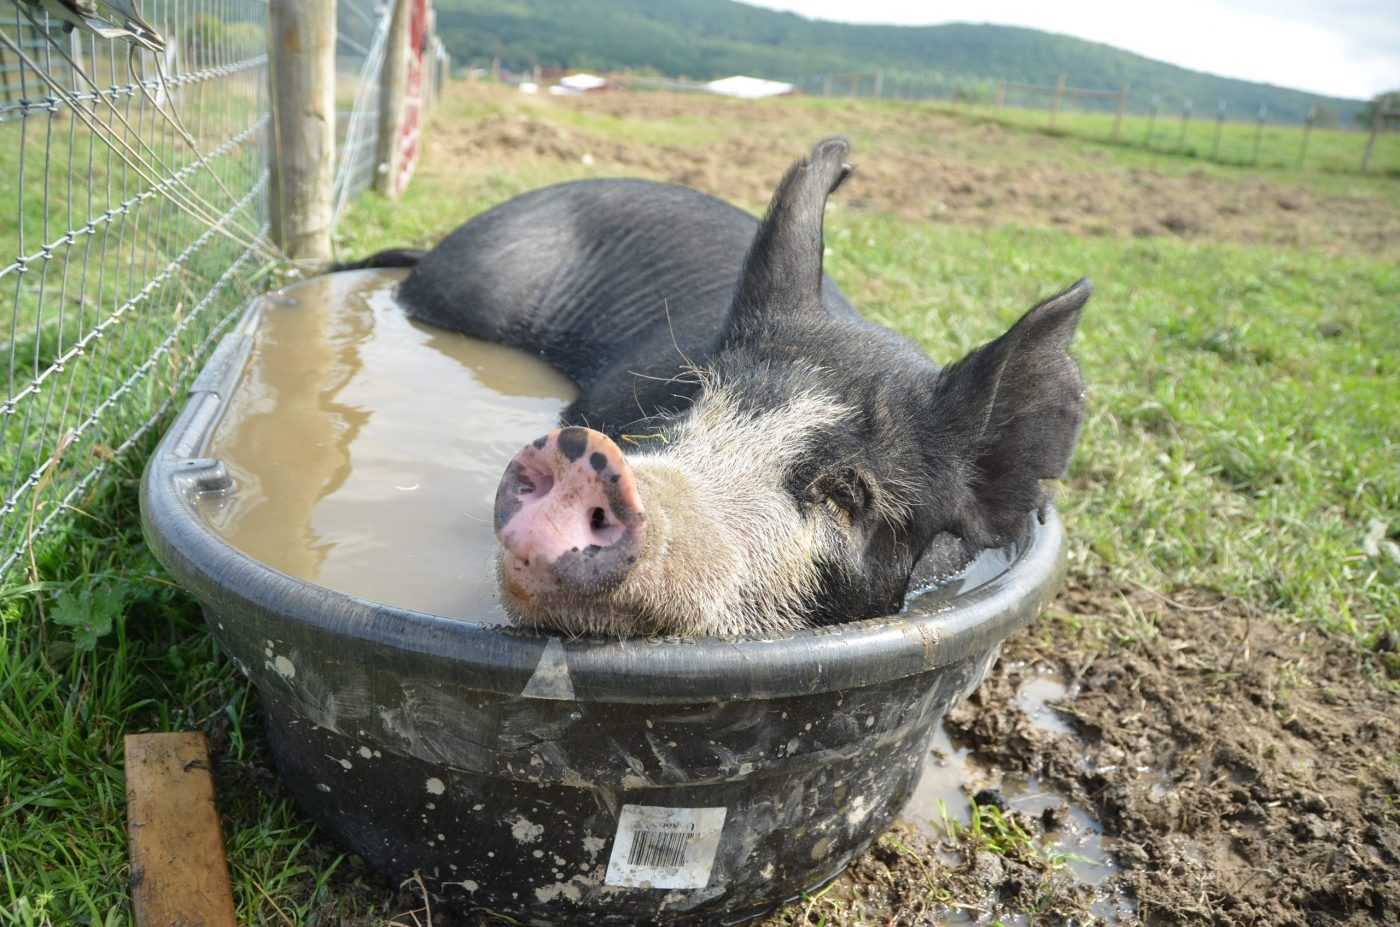 Pig laying in the water at Farm Sanctuary